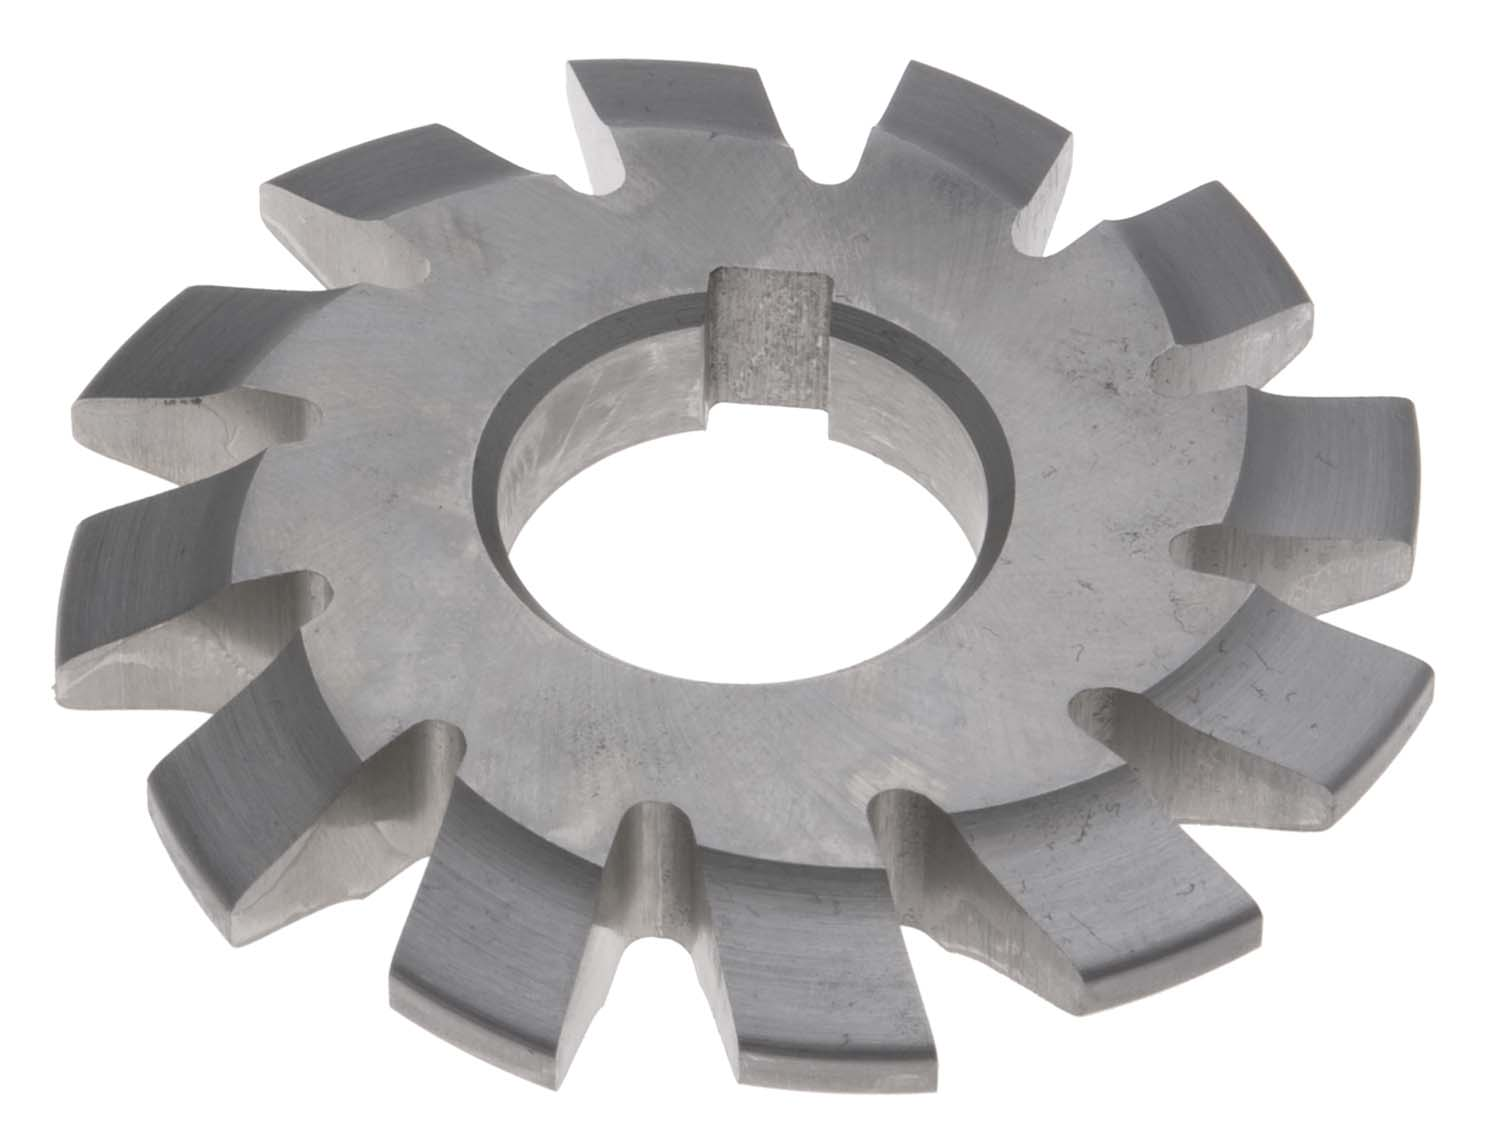 7 Diametral Pitch # 5  Involute Gear Cutter - 1 Inch ID - 14-1/2 Degree Pressure Angle